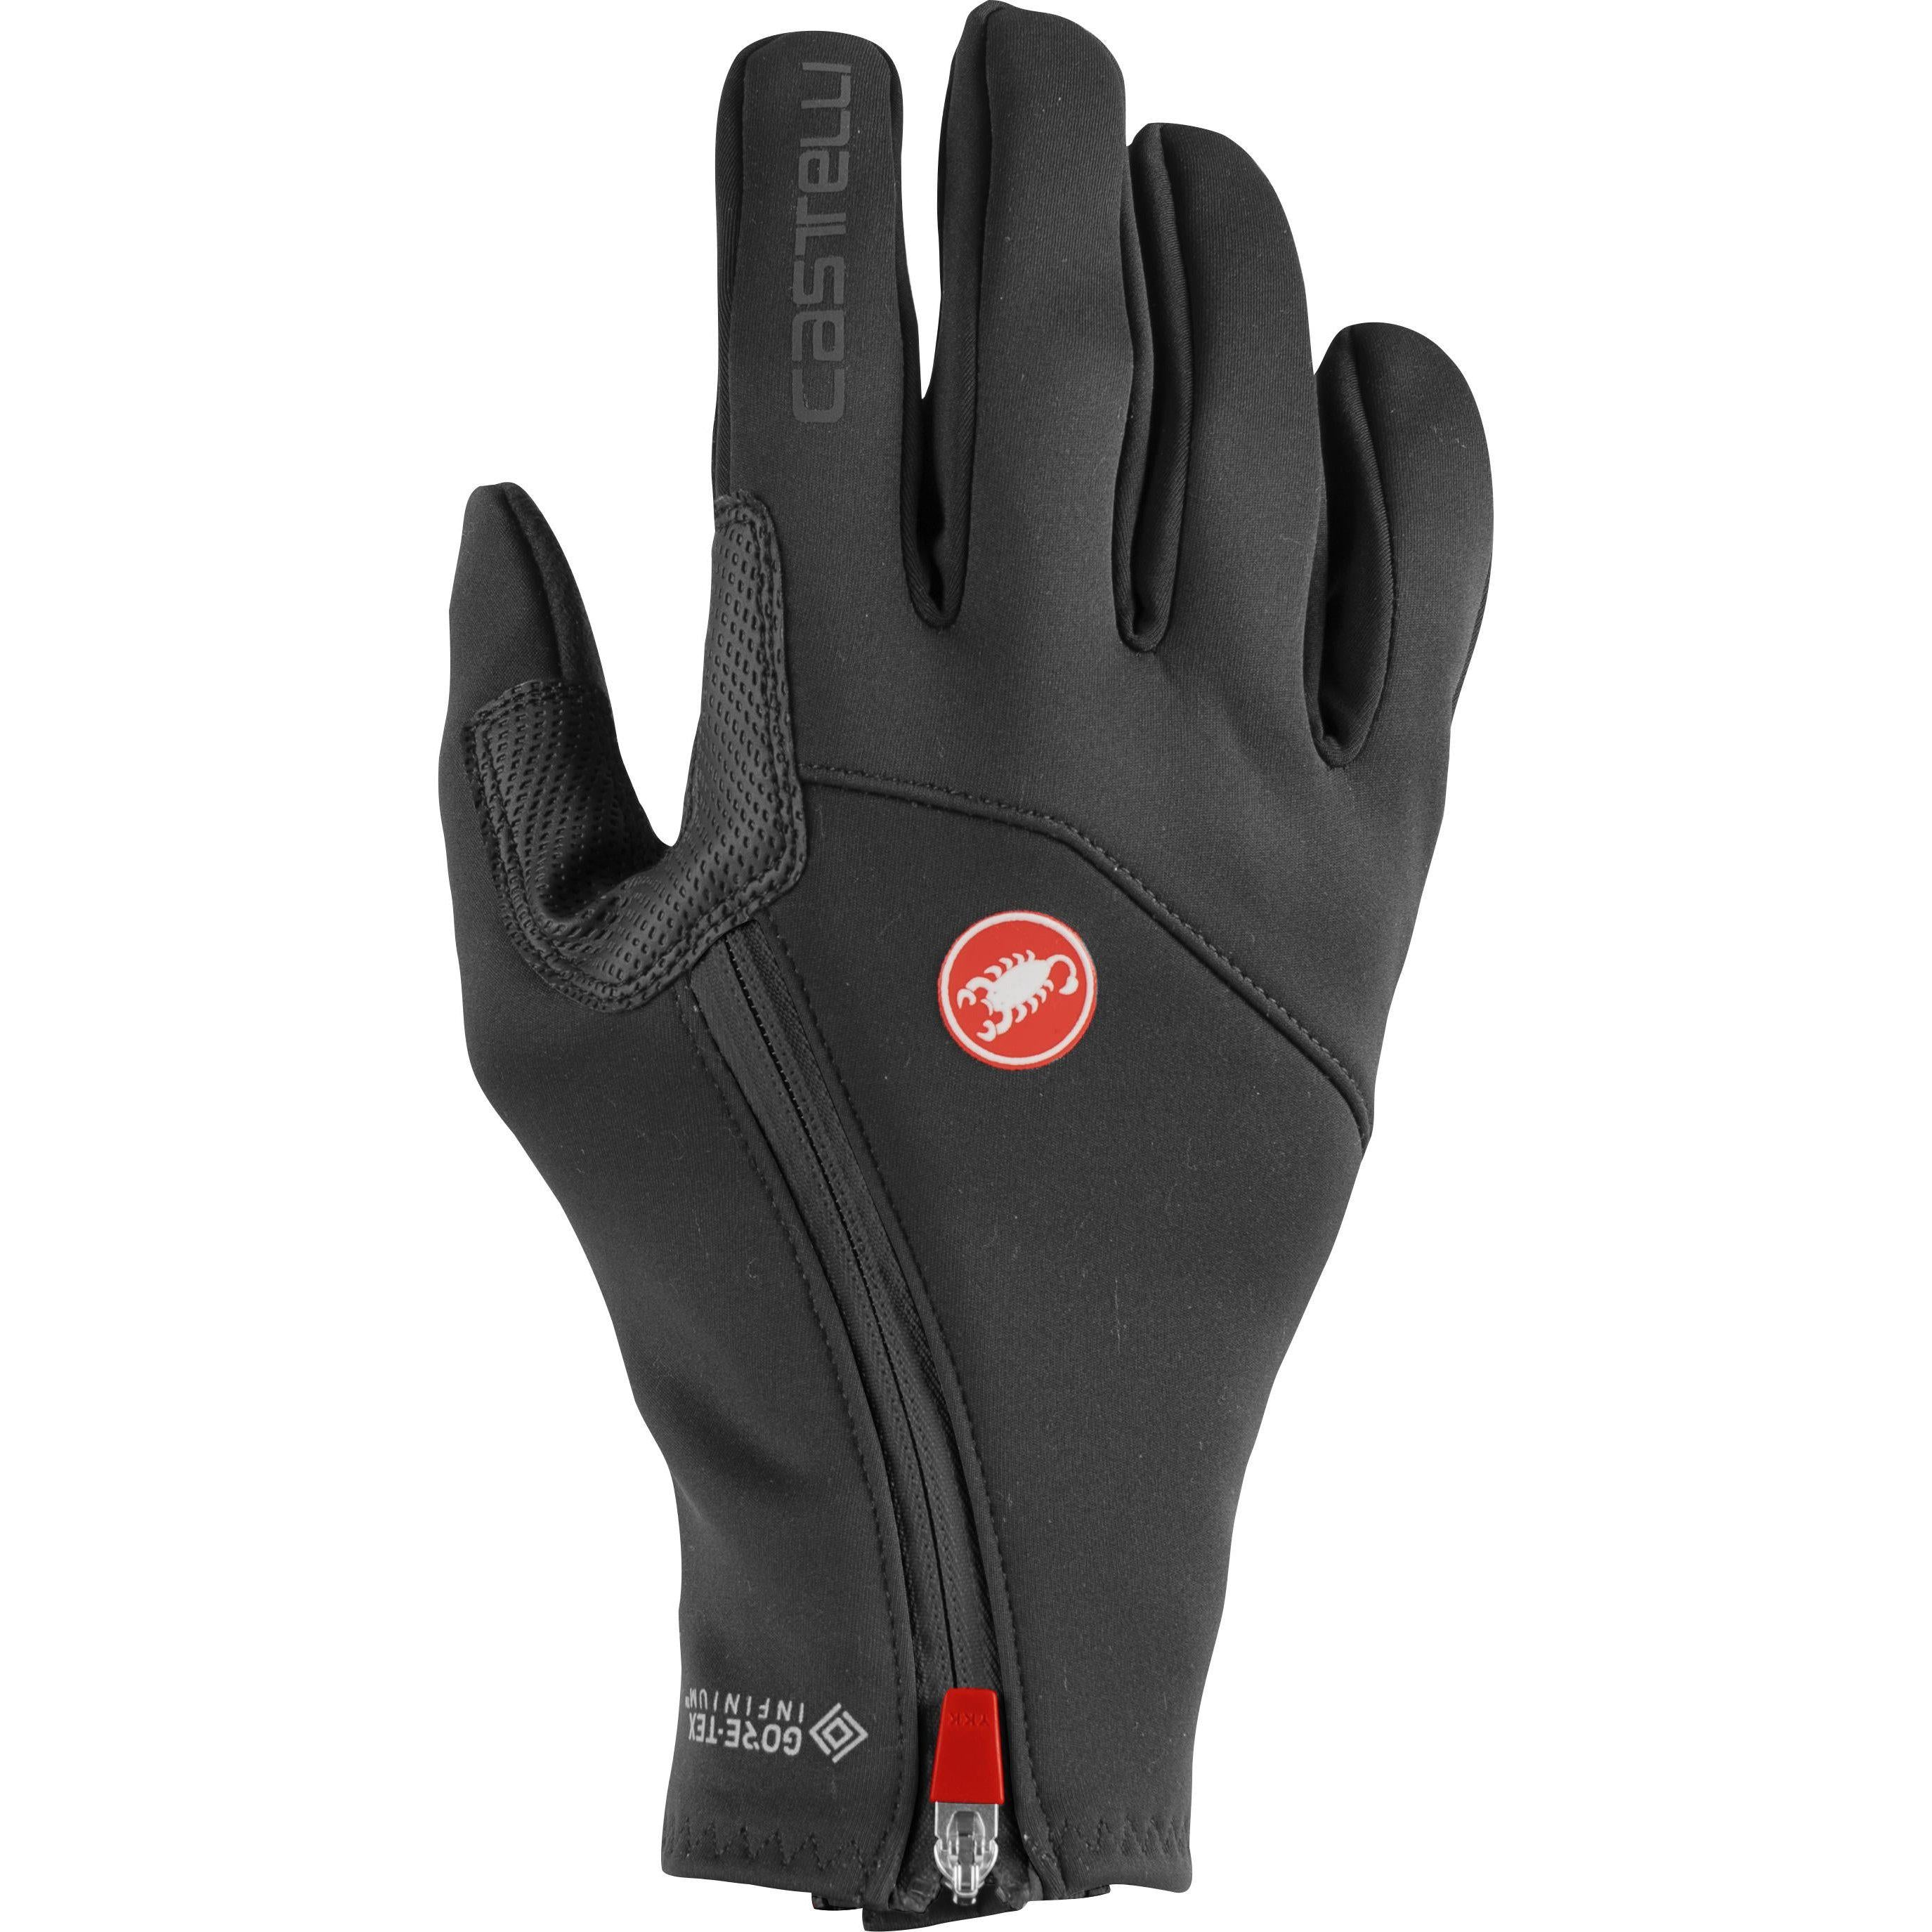 Castelli-Castelli Mortirolo Glove-Light Black-XS-CS205330851-saddleback-elite-performance-cycling